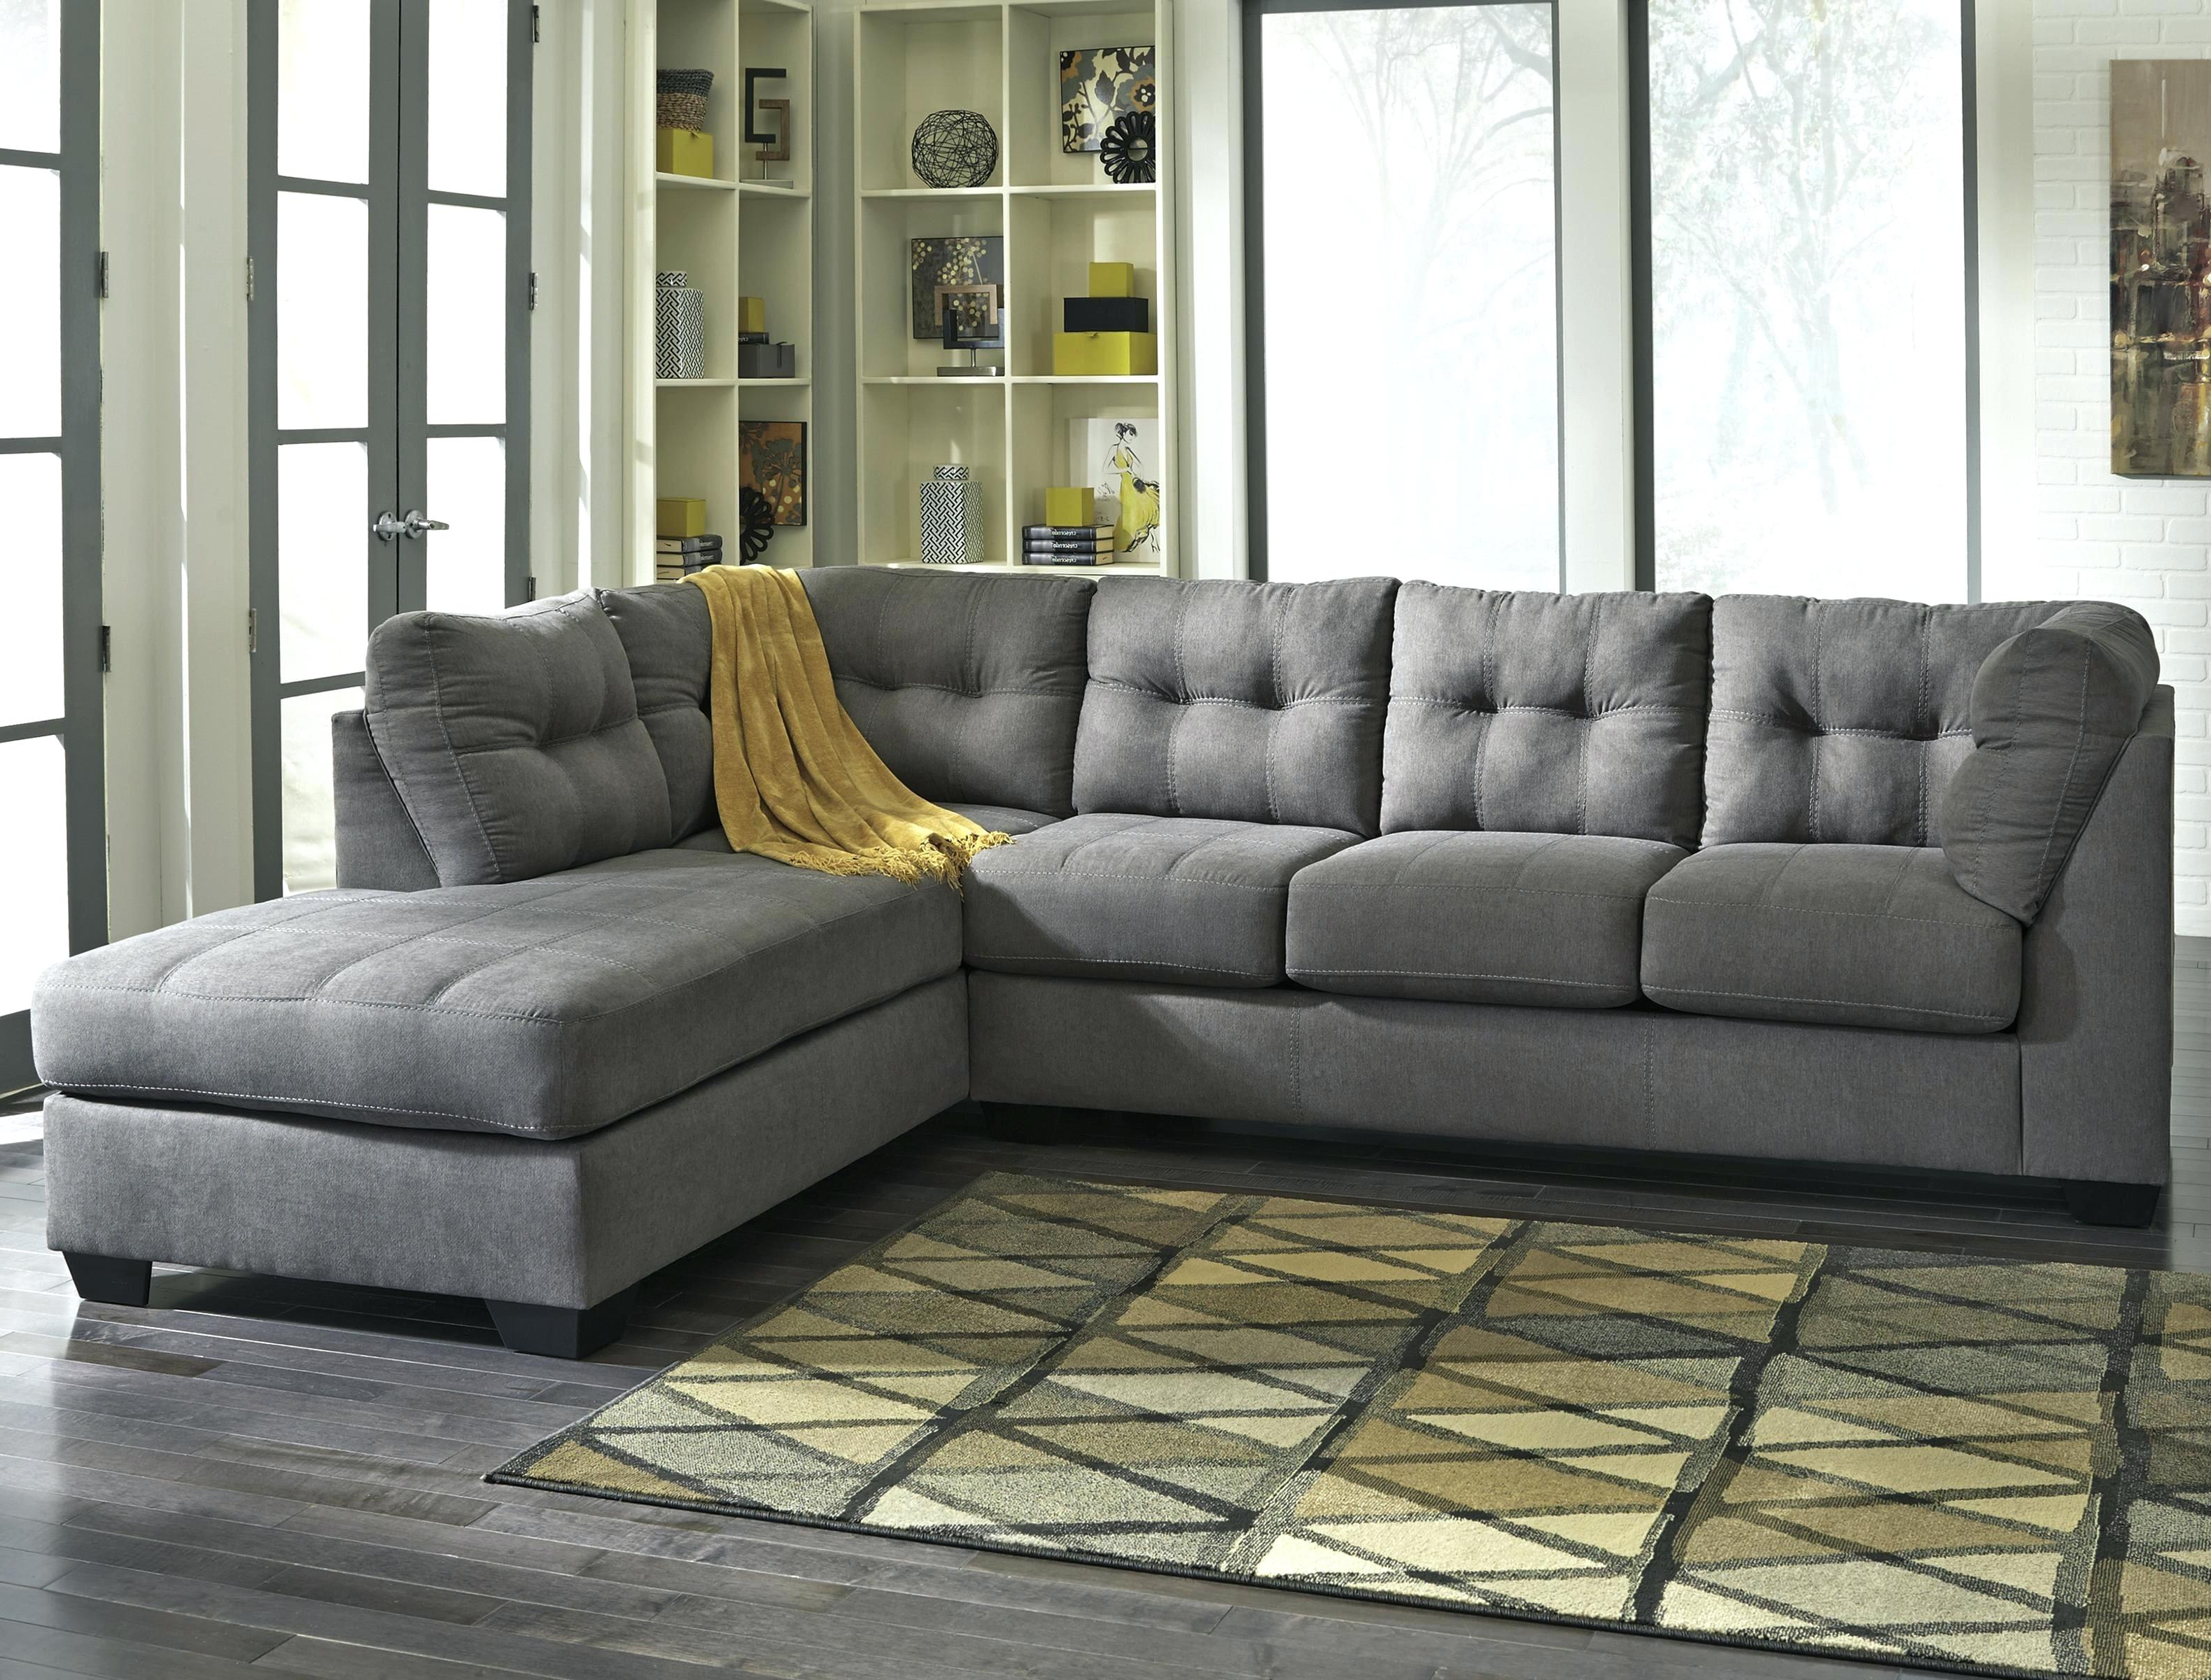 2 Piece Sectional Sofa With Chaise 2 Piece Sectional With Chaise In Latest Jobs Oat 2 Piece Sectionals With Left Facing Chaise (View 1 of 20)